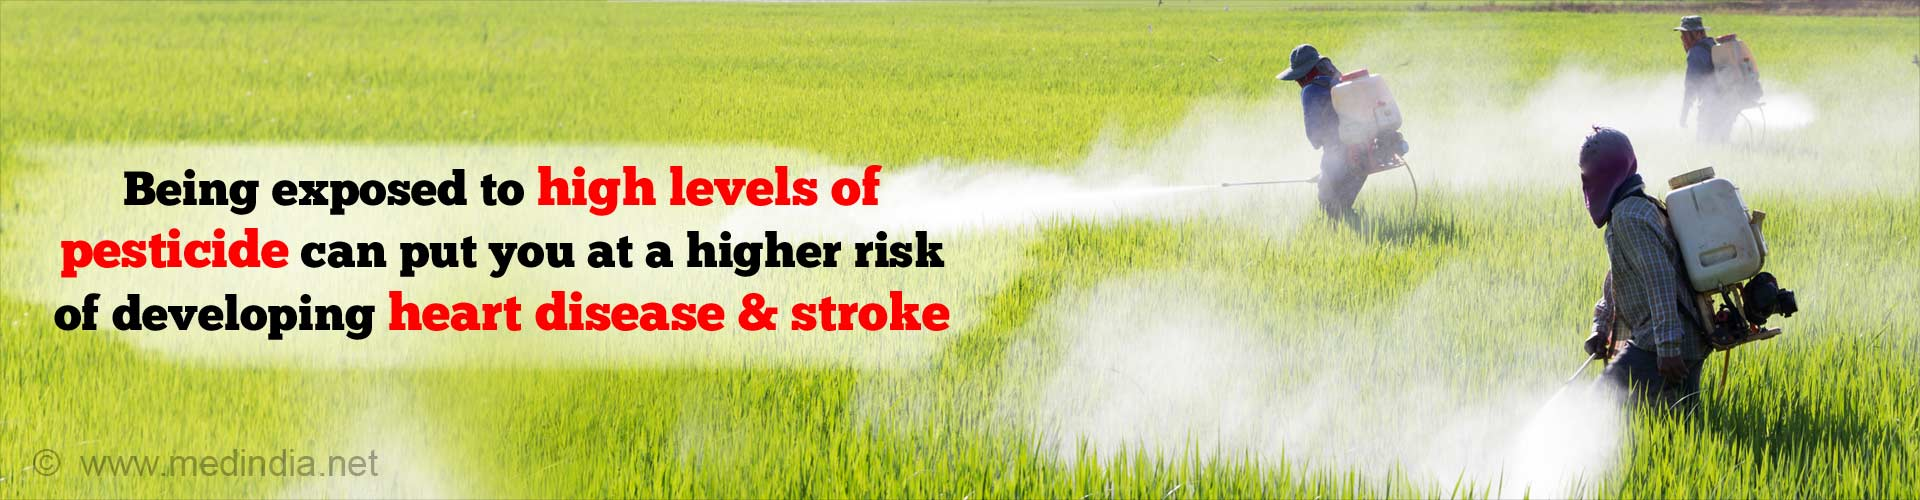 Being exposed to high levels of pesticide can put you at a higher risk of developing heart disease and stroke.